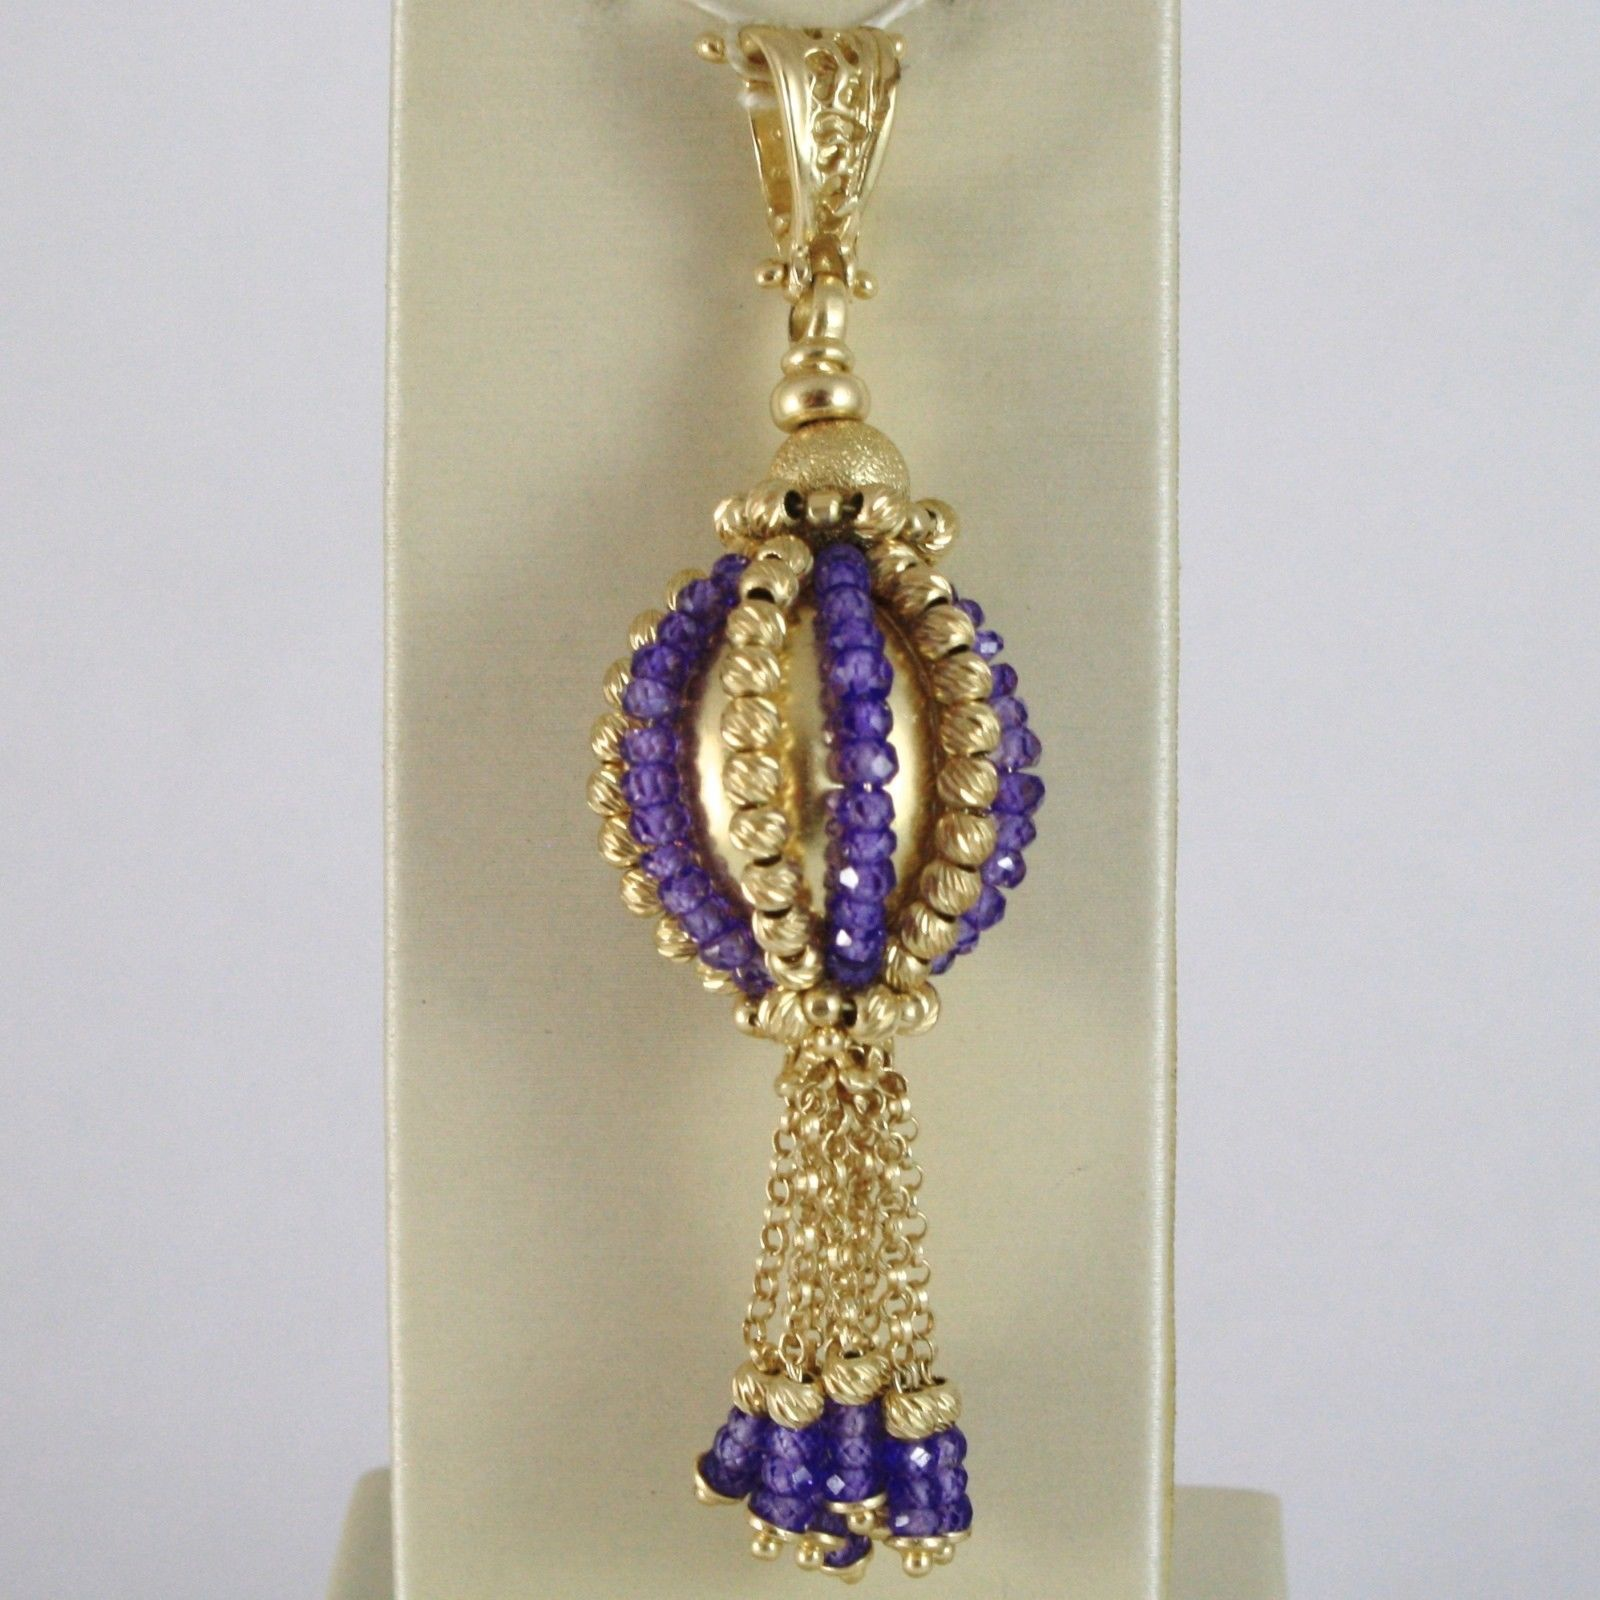 925 STERLING SILVER PENDANT WITH AMETHYST FINELY WORKED BALLS AND FRINGES, ITALY